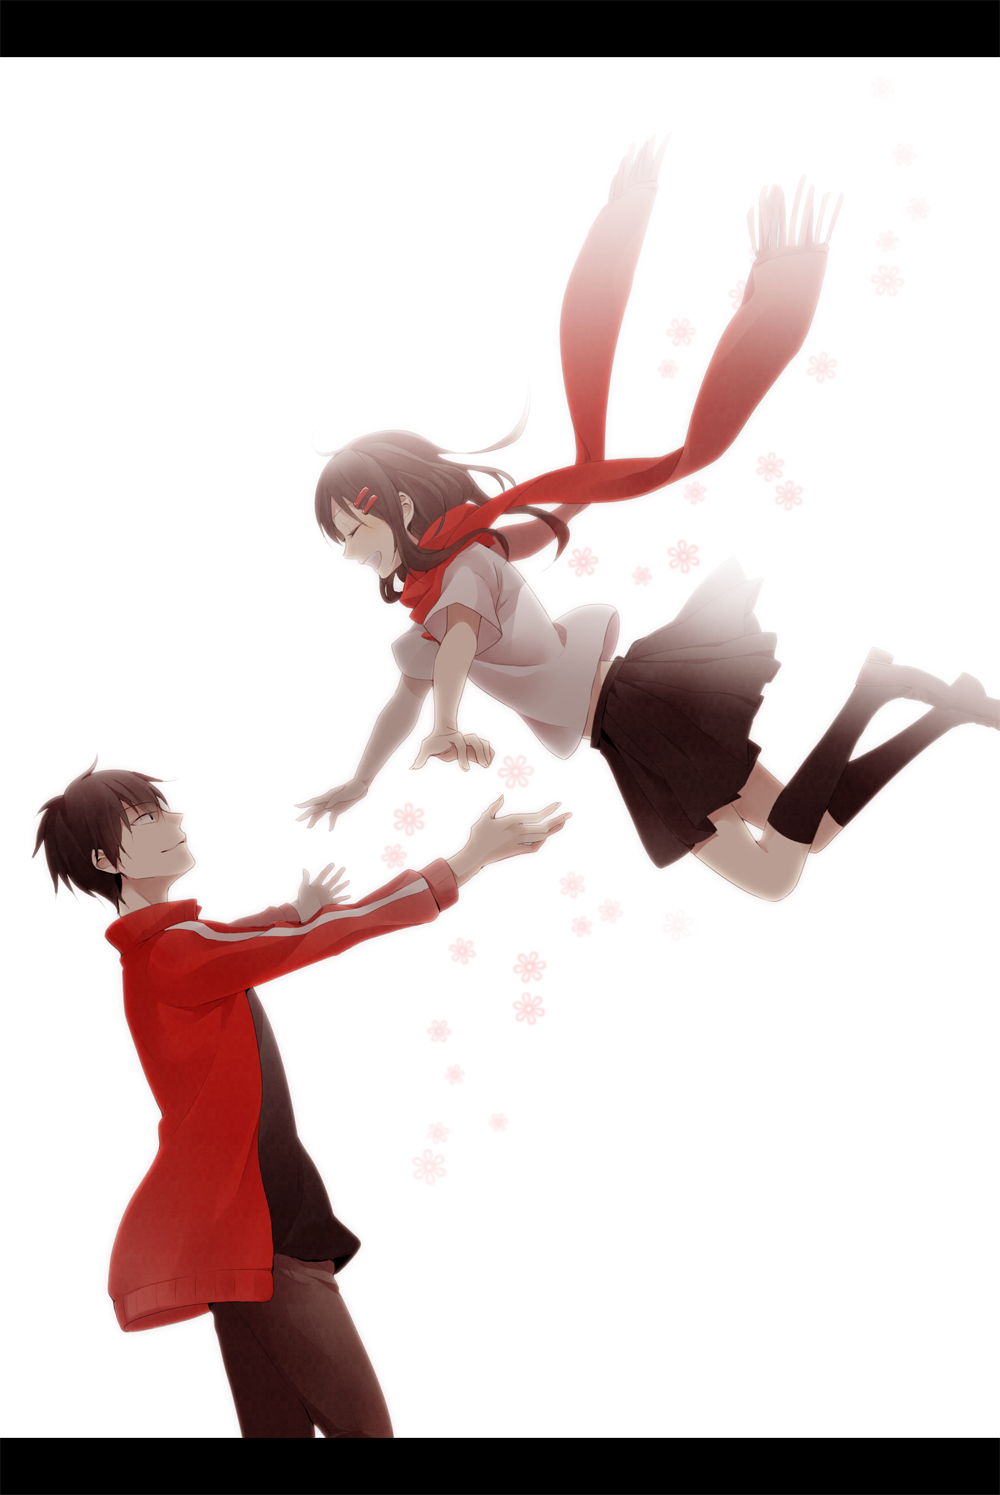 kagerou project Part 2 - k0sDEF/100 - Anime Image